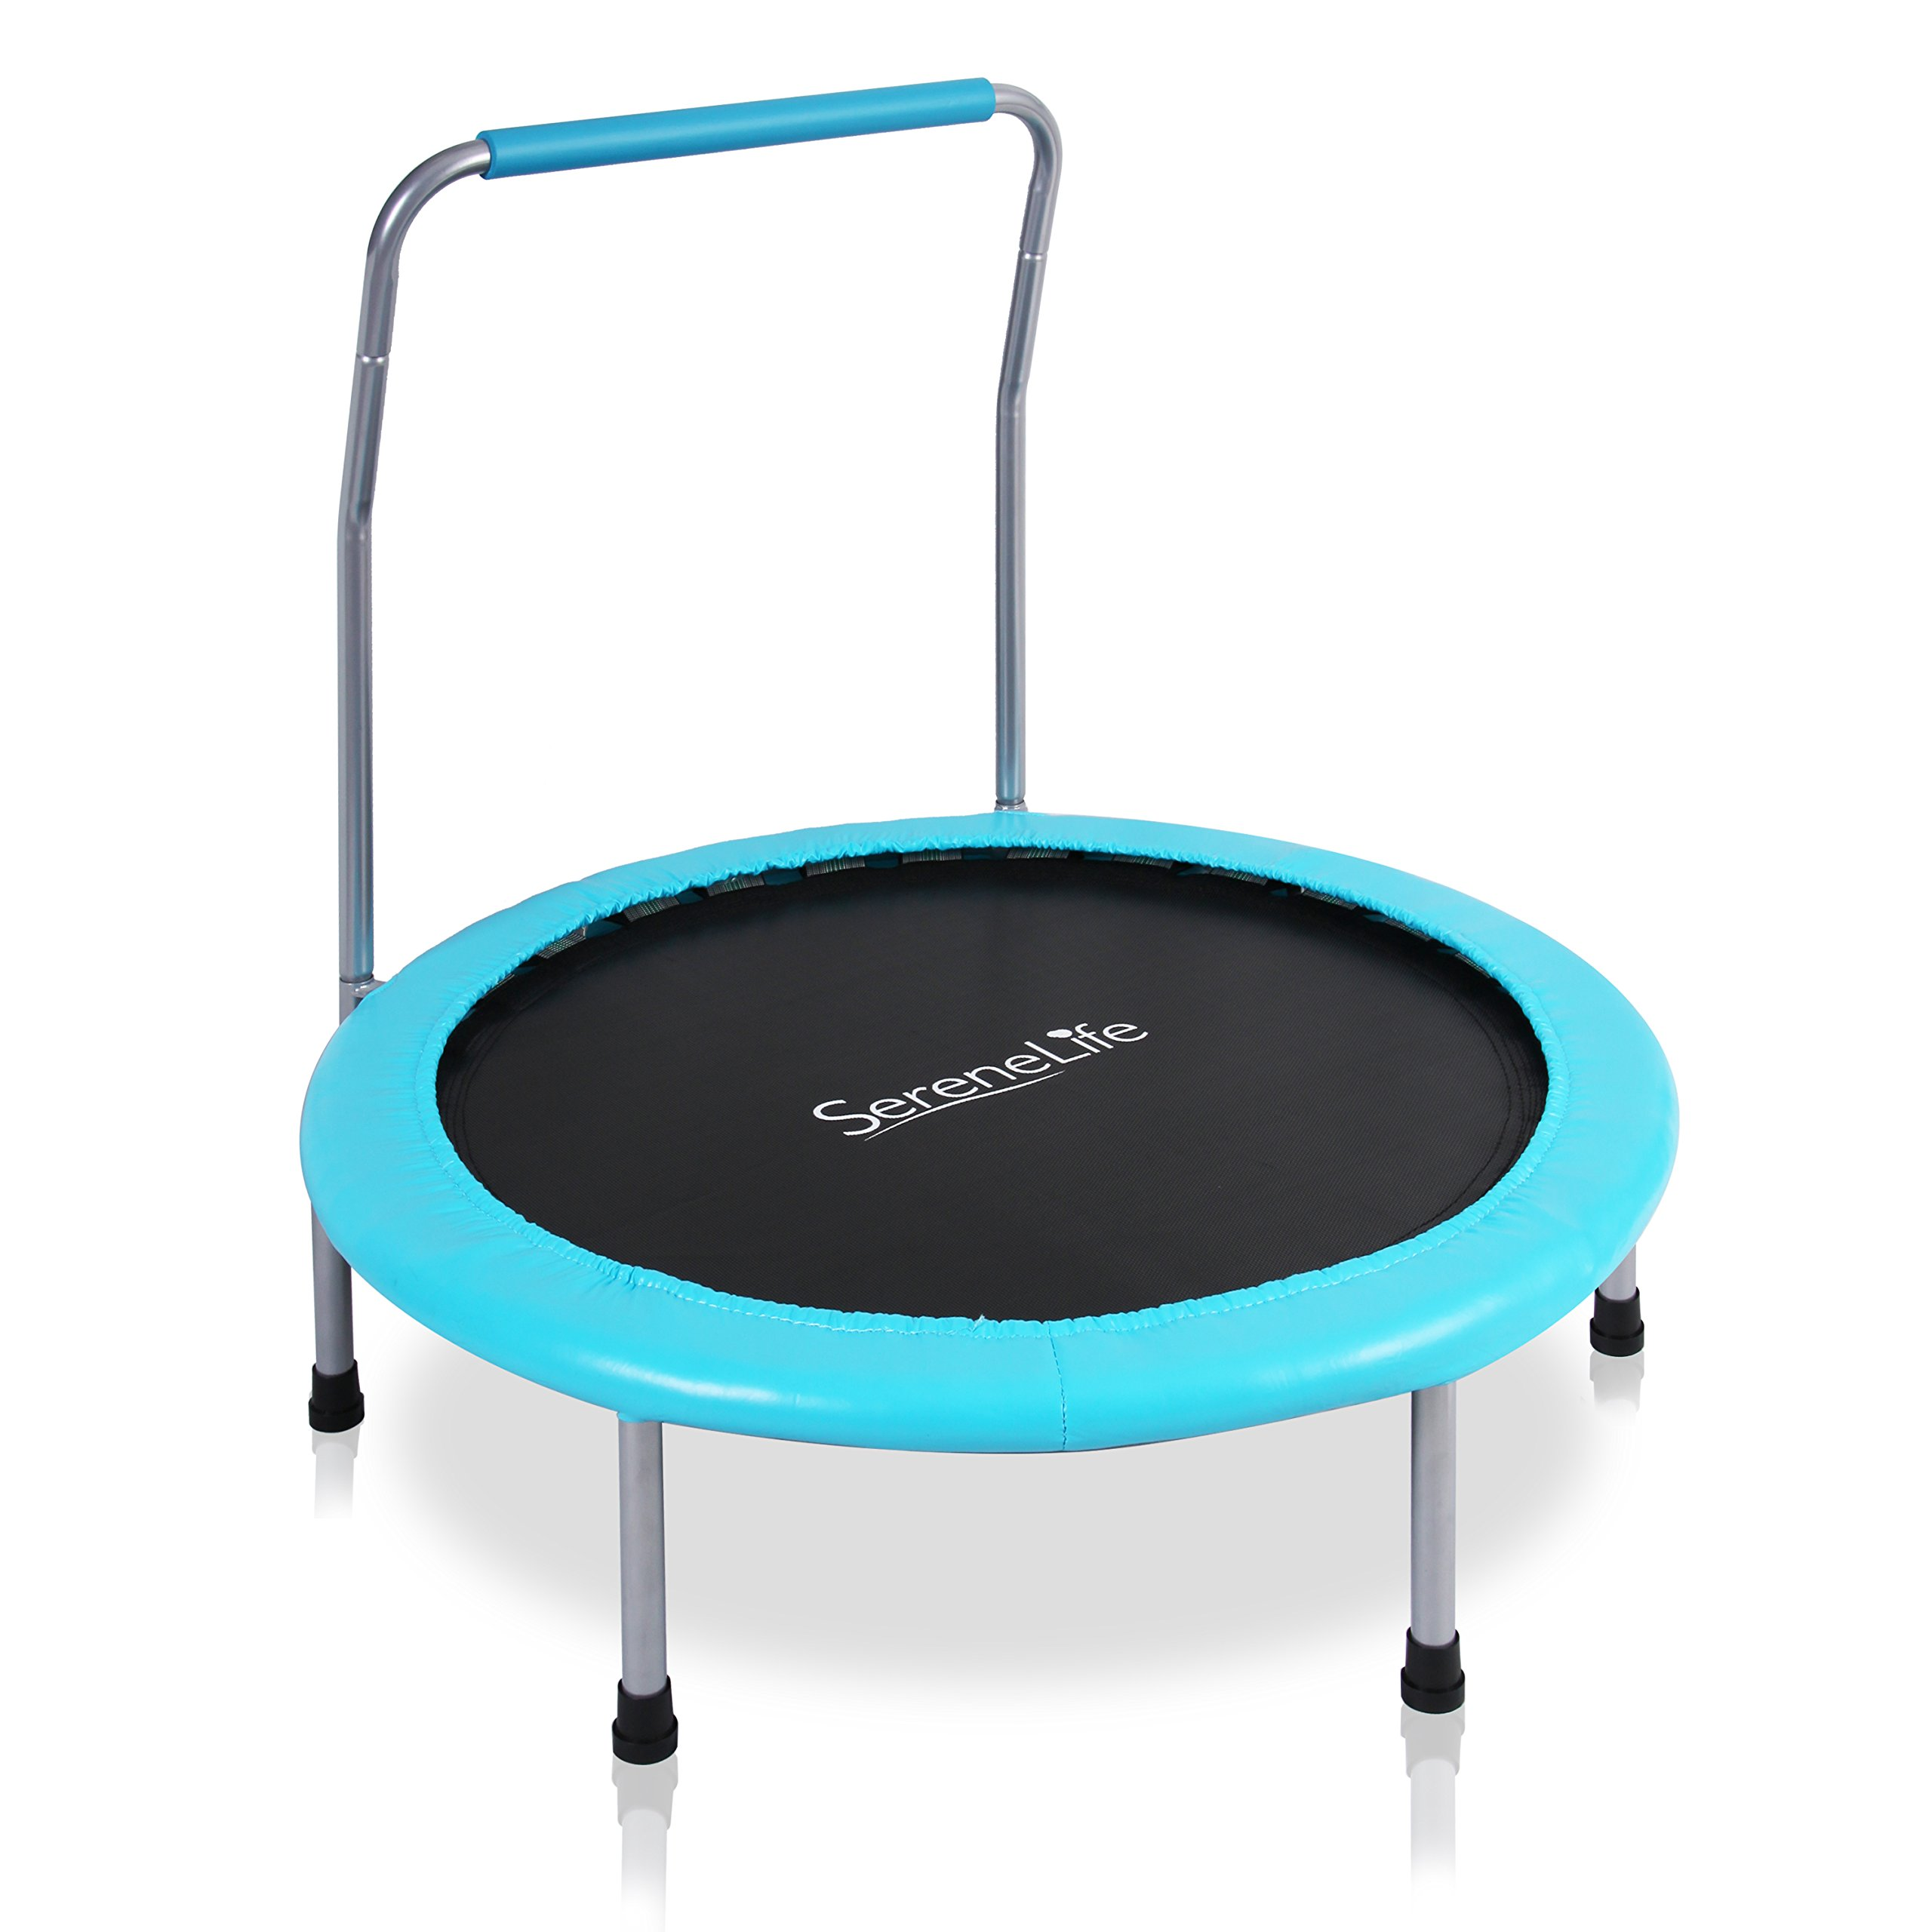 SereneLife Portable & Foldable Trampoline - 36'' Dia Springfree Rebounder Jumping Mat Safe for Kid w/Padded Frame Cover and Handlebar and Carry Bag - SLELT367 by SereneLife